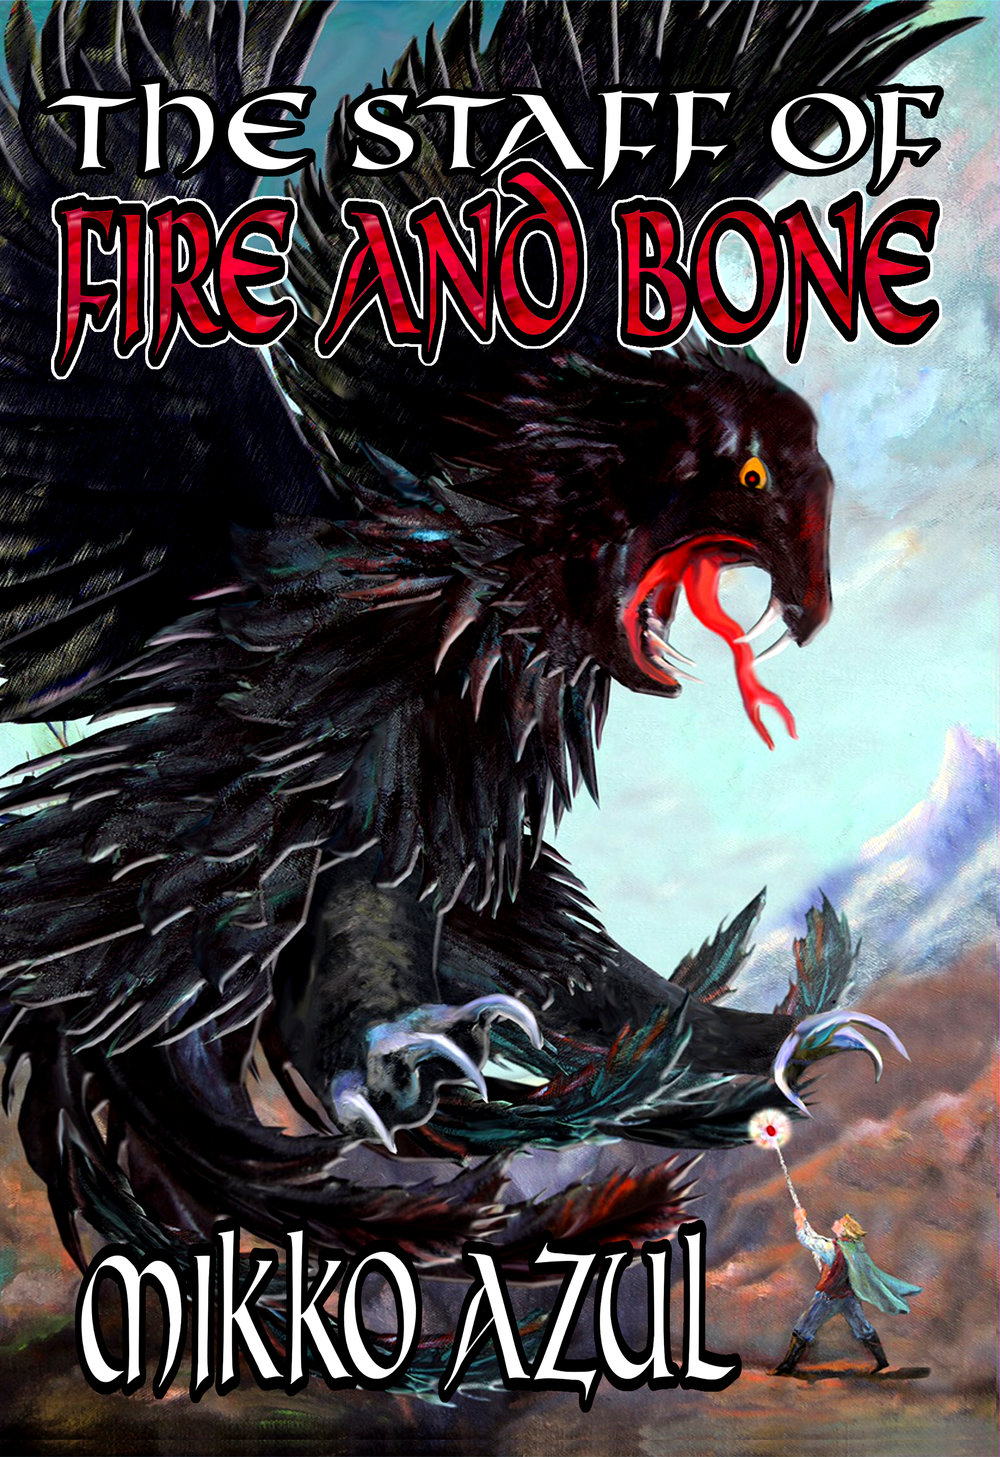 Front cover of The Staff of Fire and Bone